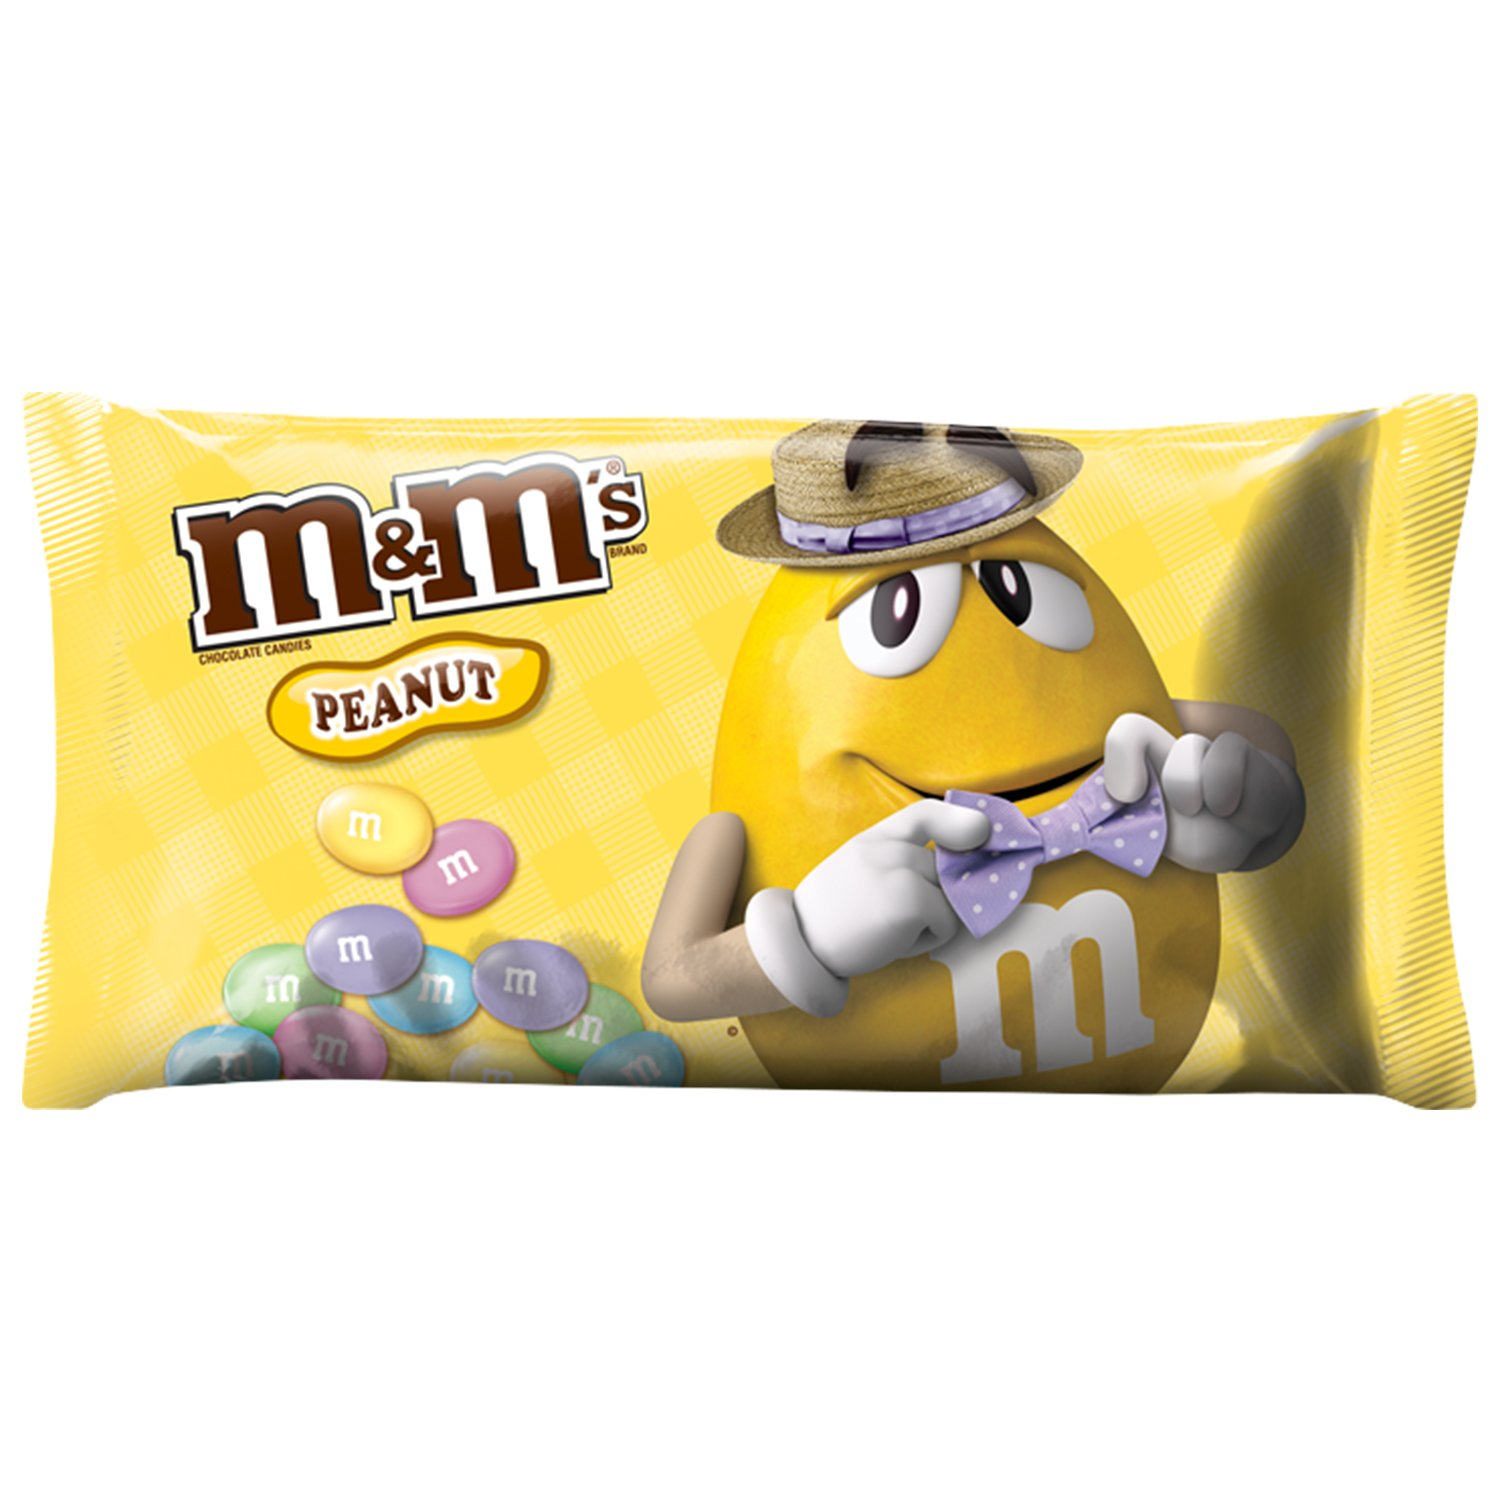 M&M's Peanut Chocolate Candy Easter Blend, 11.4 Ounce